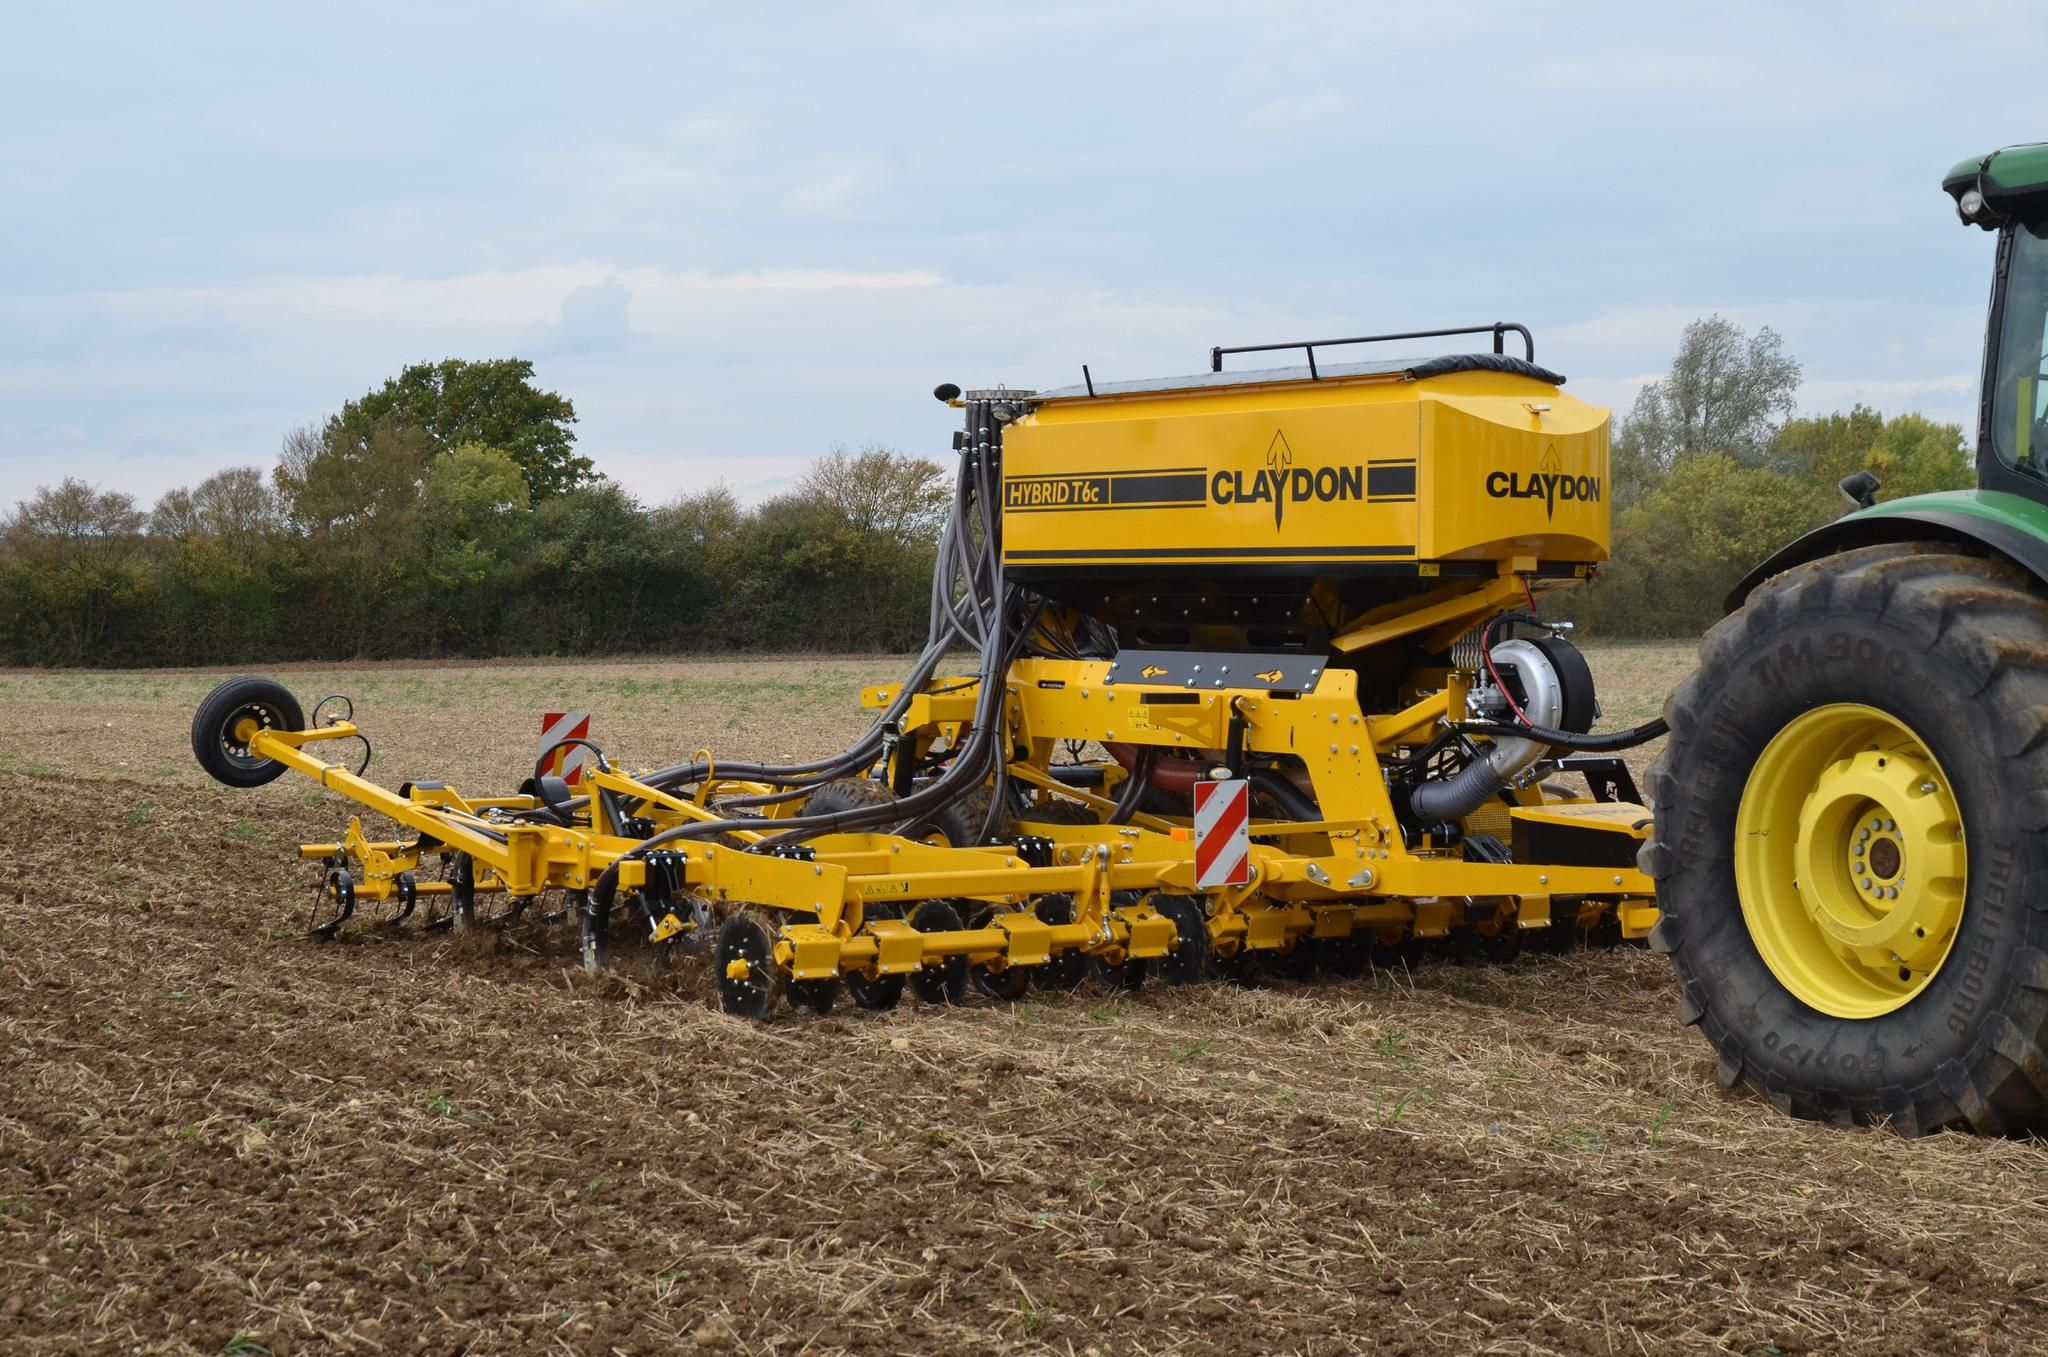 NEW 6M CLAYDON HYBRID T6C COMPACT TRAILED DRILL TO BE SHOWN AT CEREALS 2019